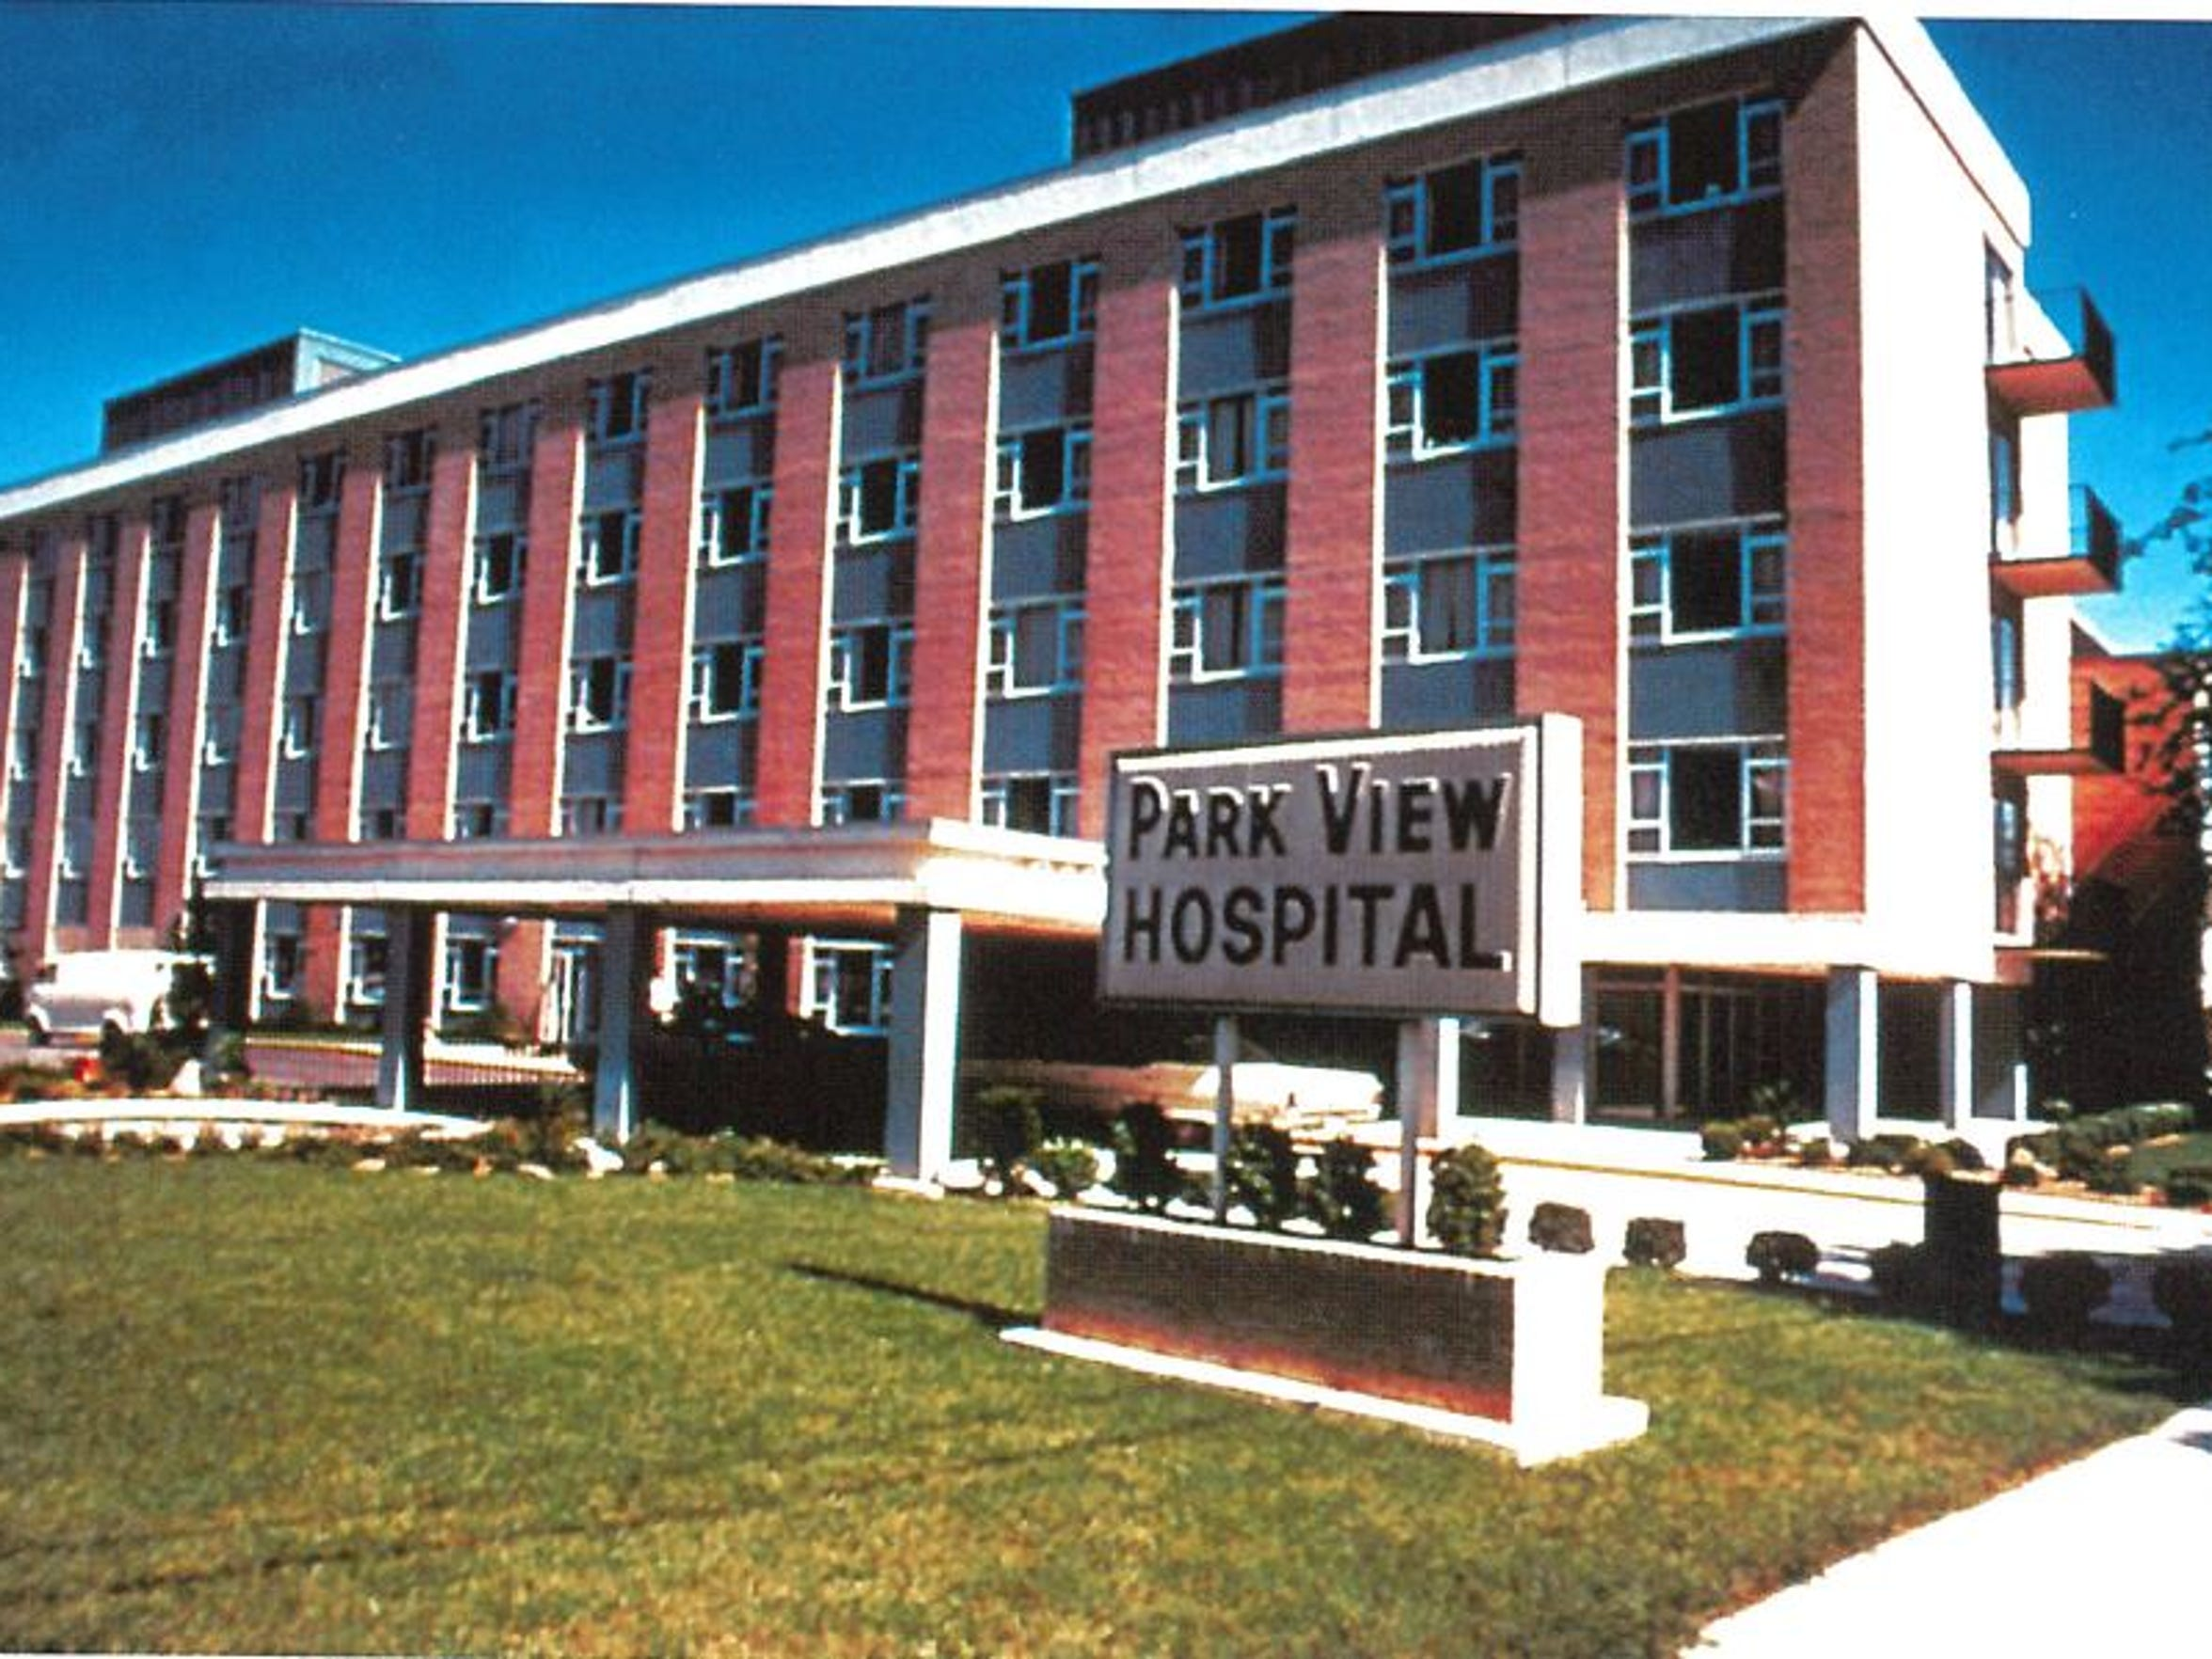 Park View Hospital, a 200-bed Nashville facility seen